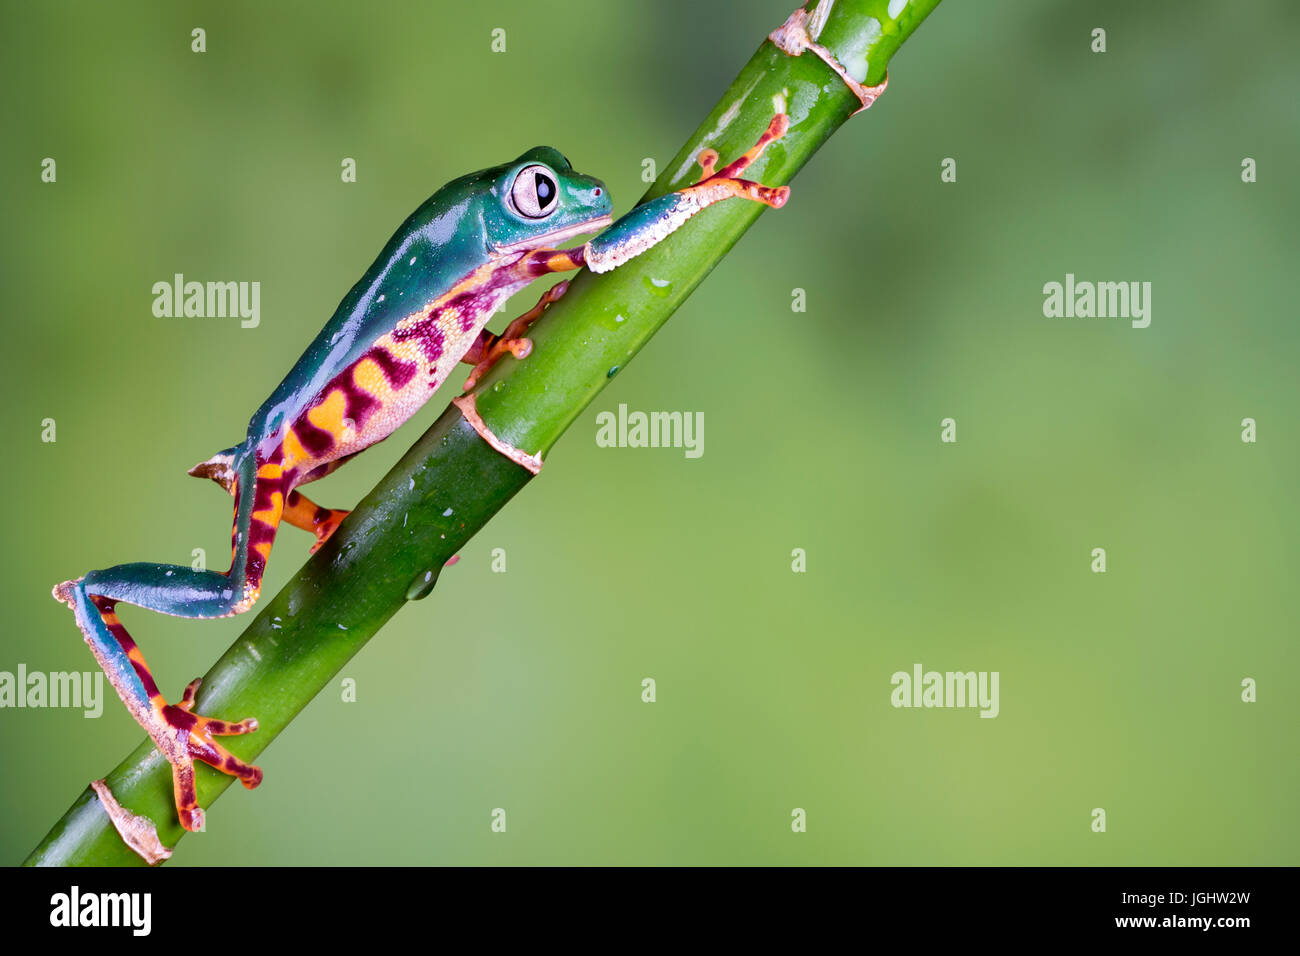 Super Tiger Leg Waxy Monkey Frog - Stock Image